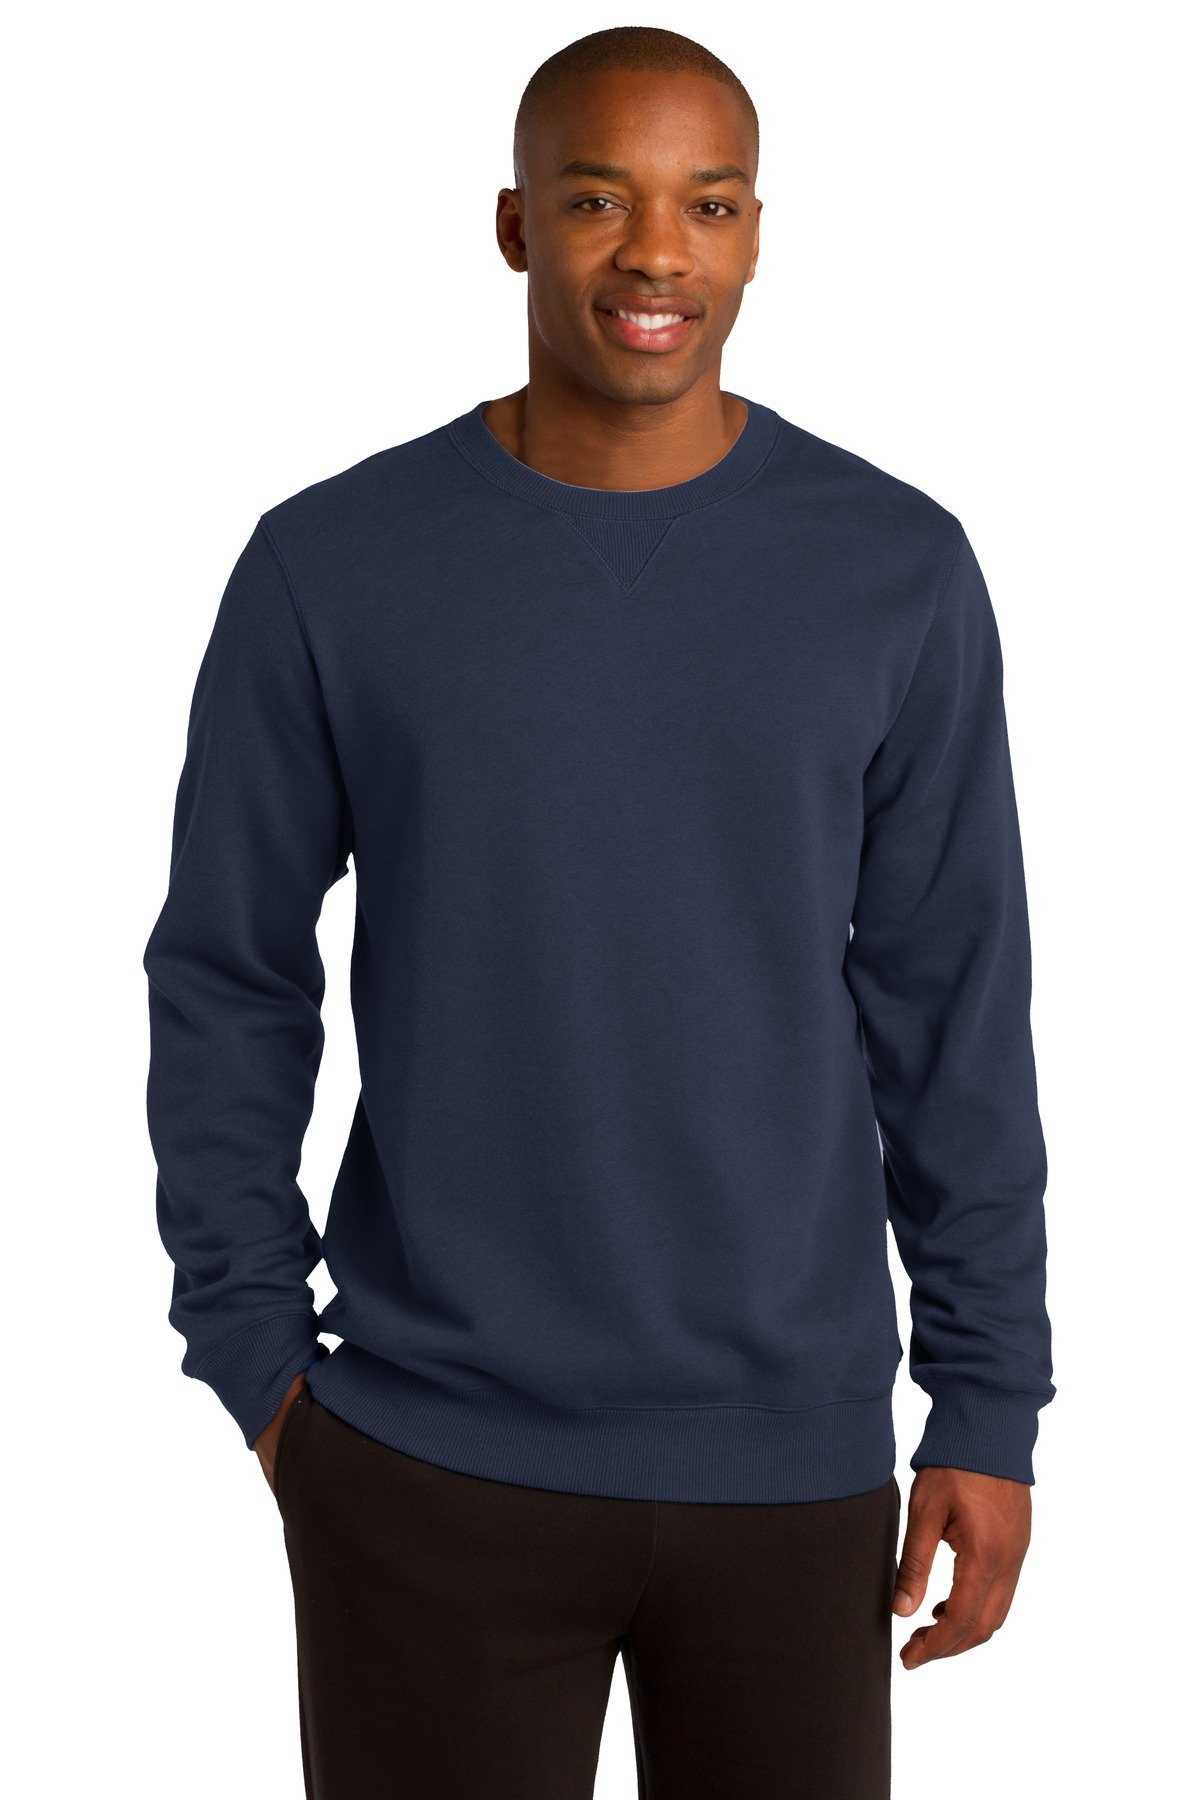 Sport-Tek Men's Crewneck Sweatshirt M True Navy by Sport-Tek